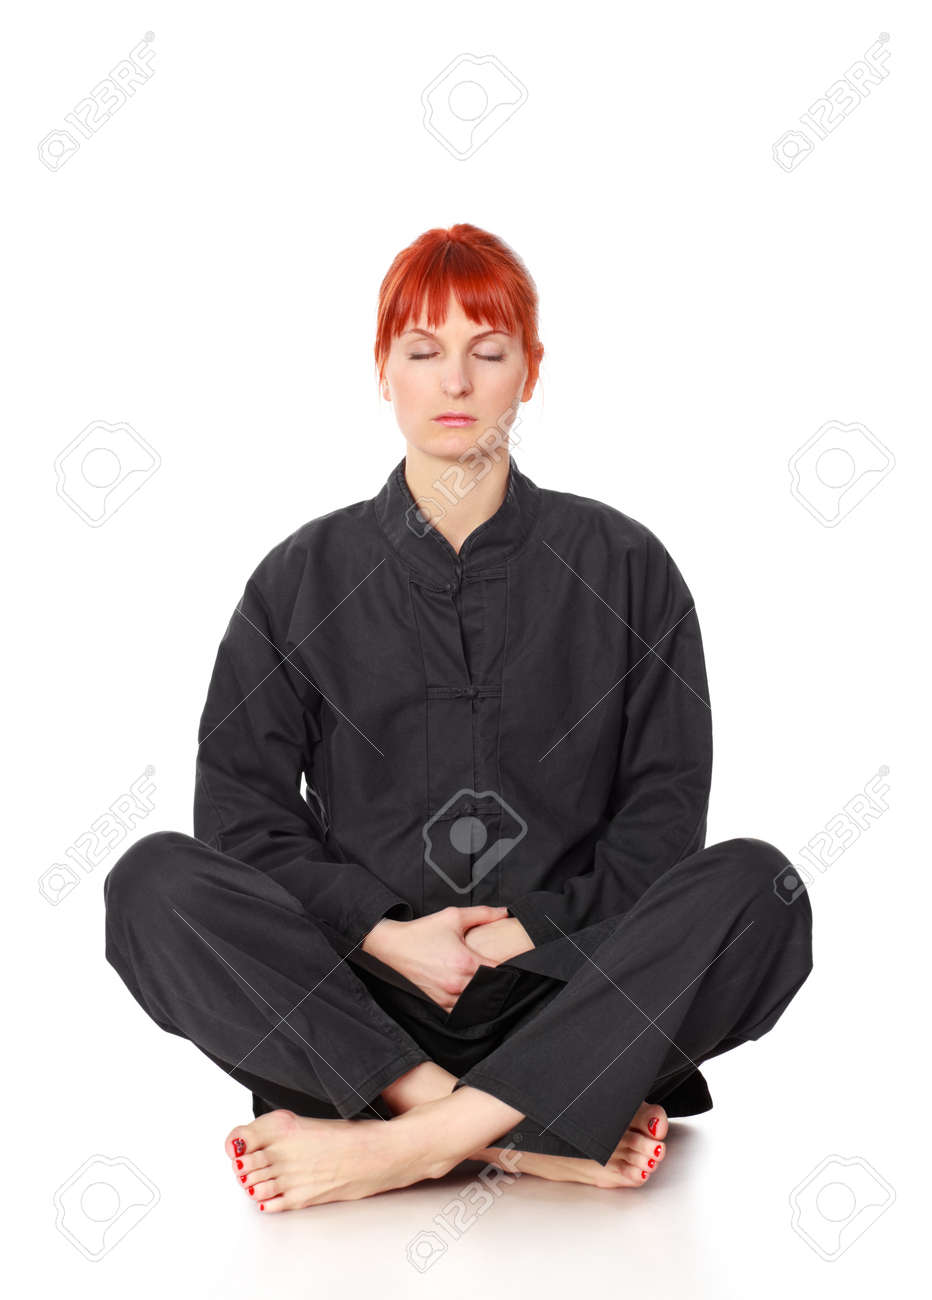 girl in black kimono siting and meditation isolated on white Stock Photo - 9183726